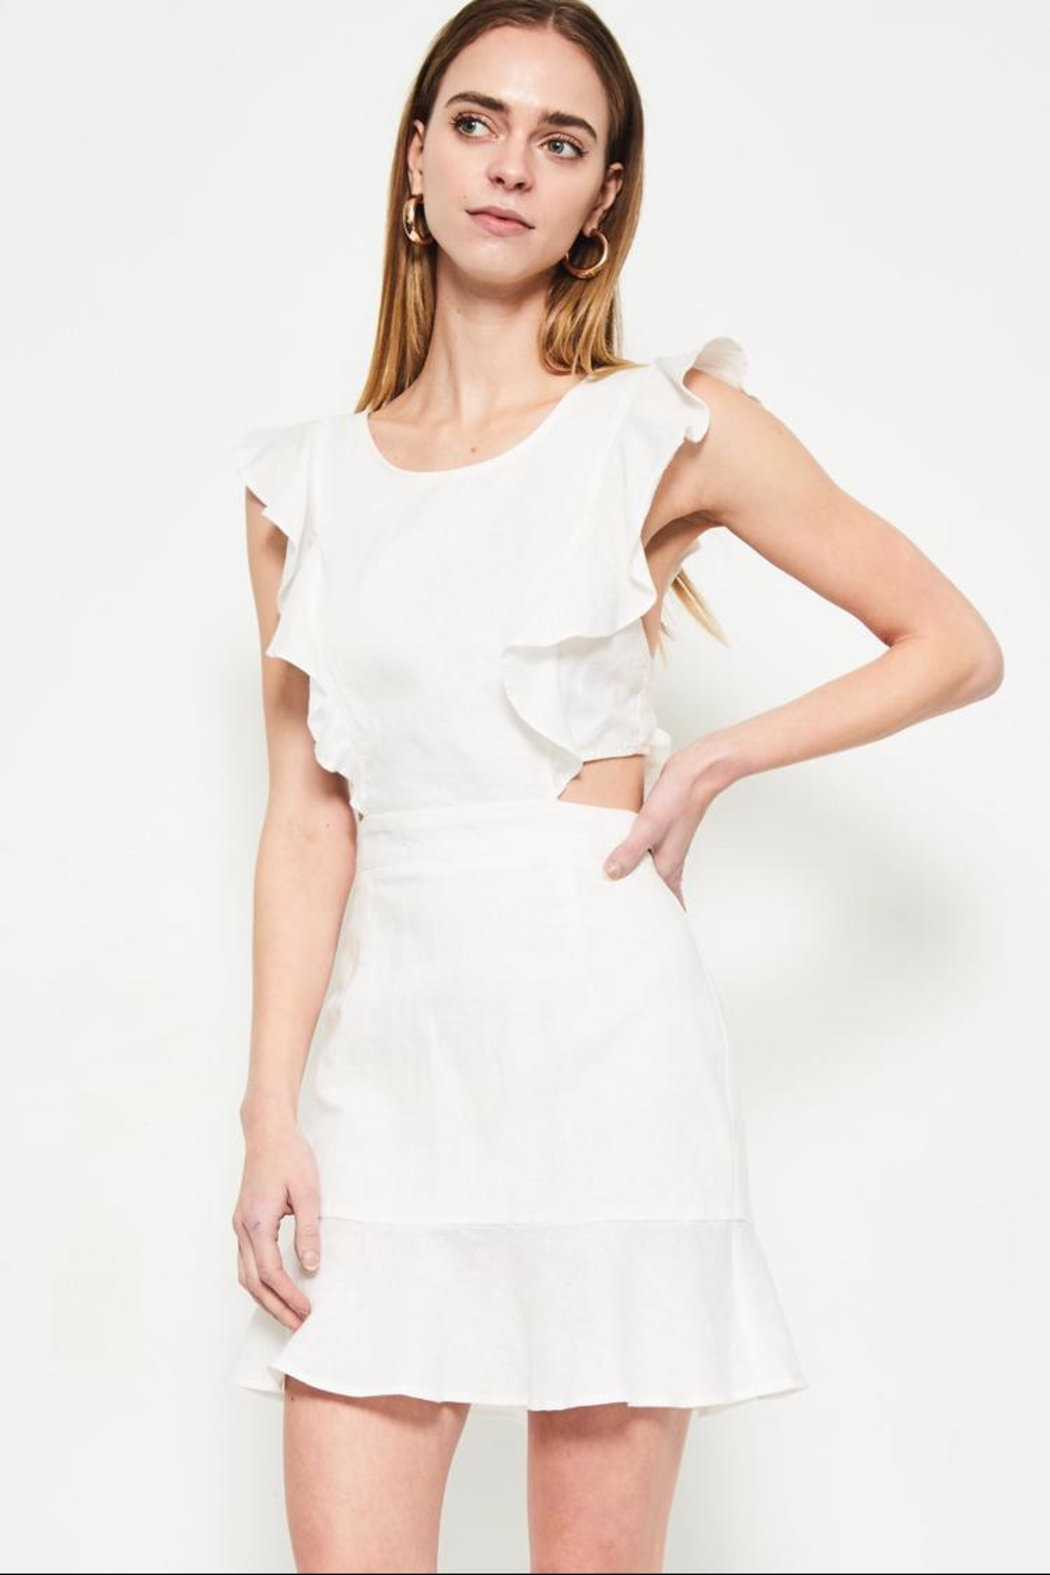 etophe studios White Ruffle Dress - Main Image